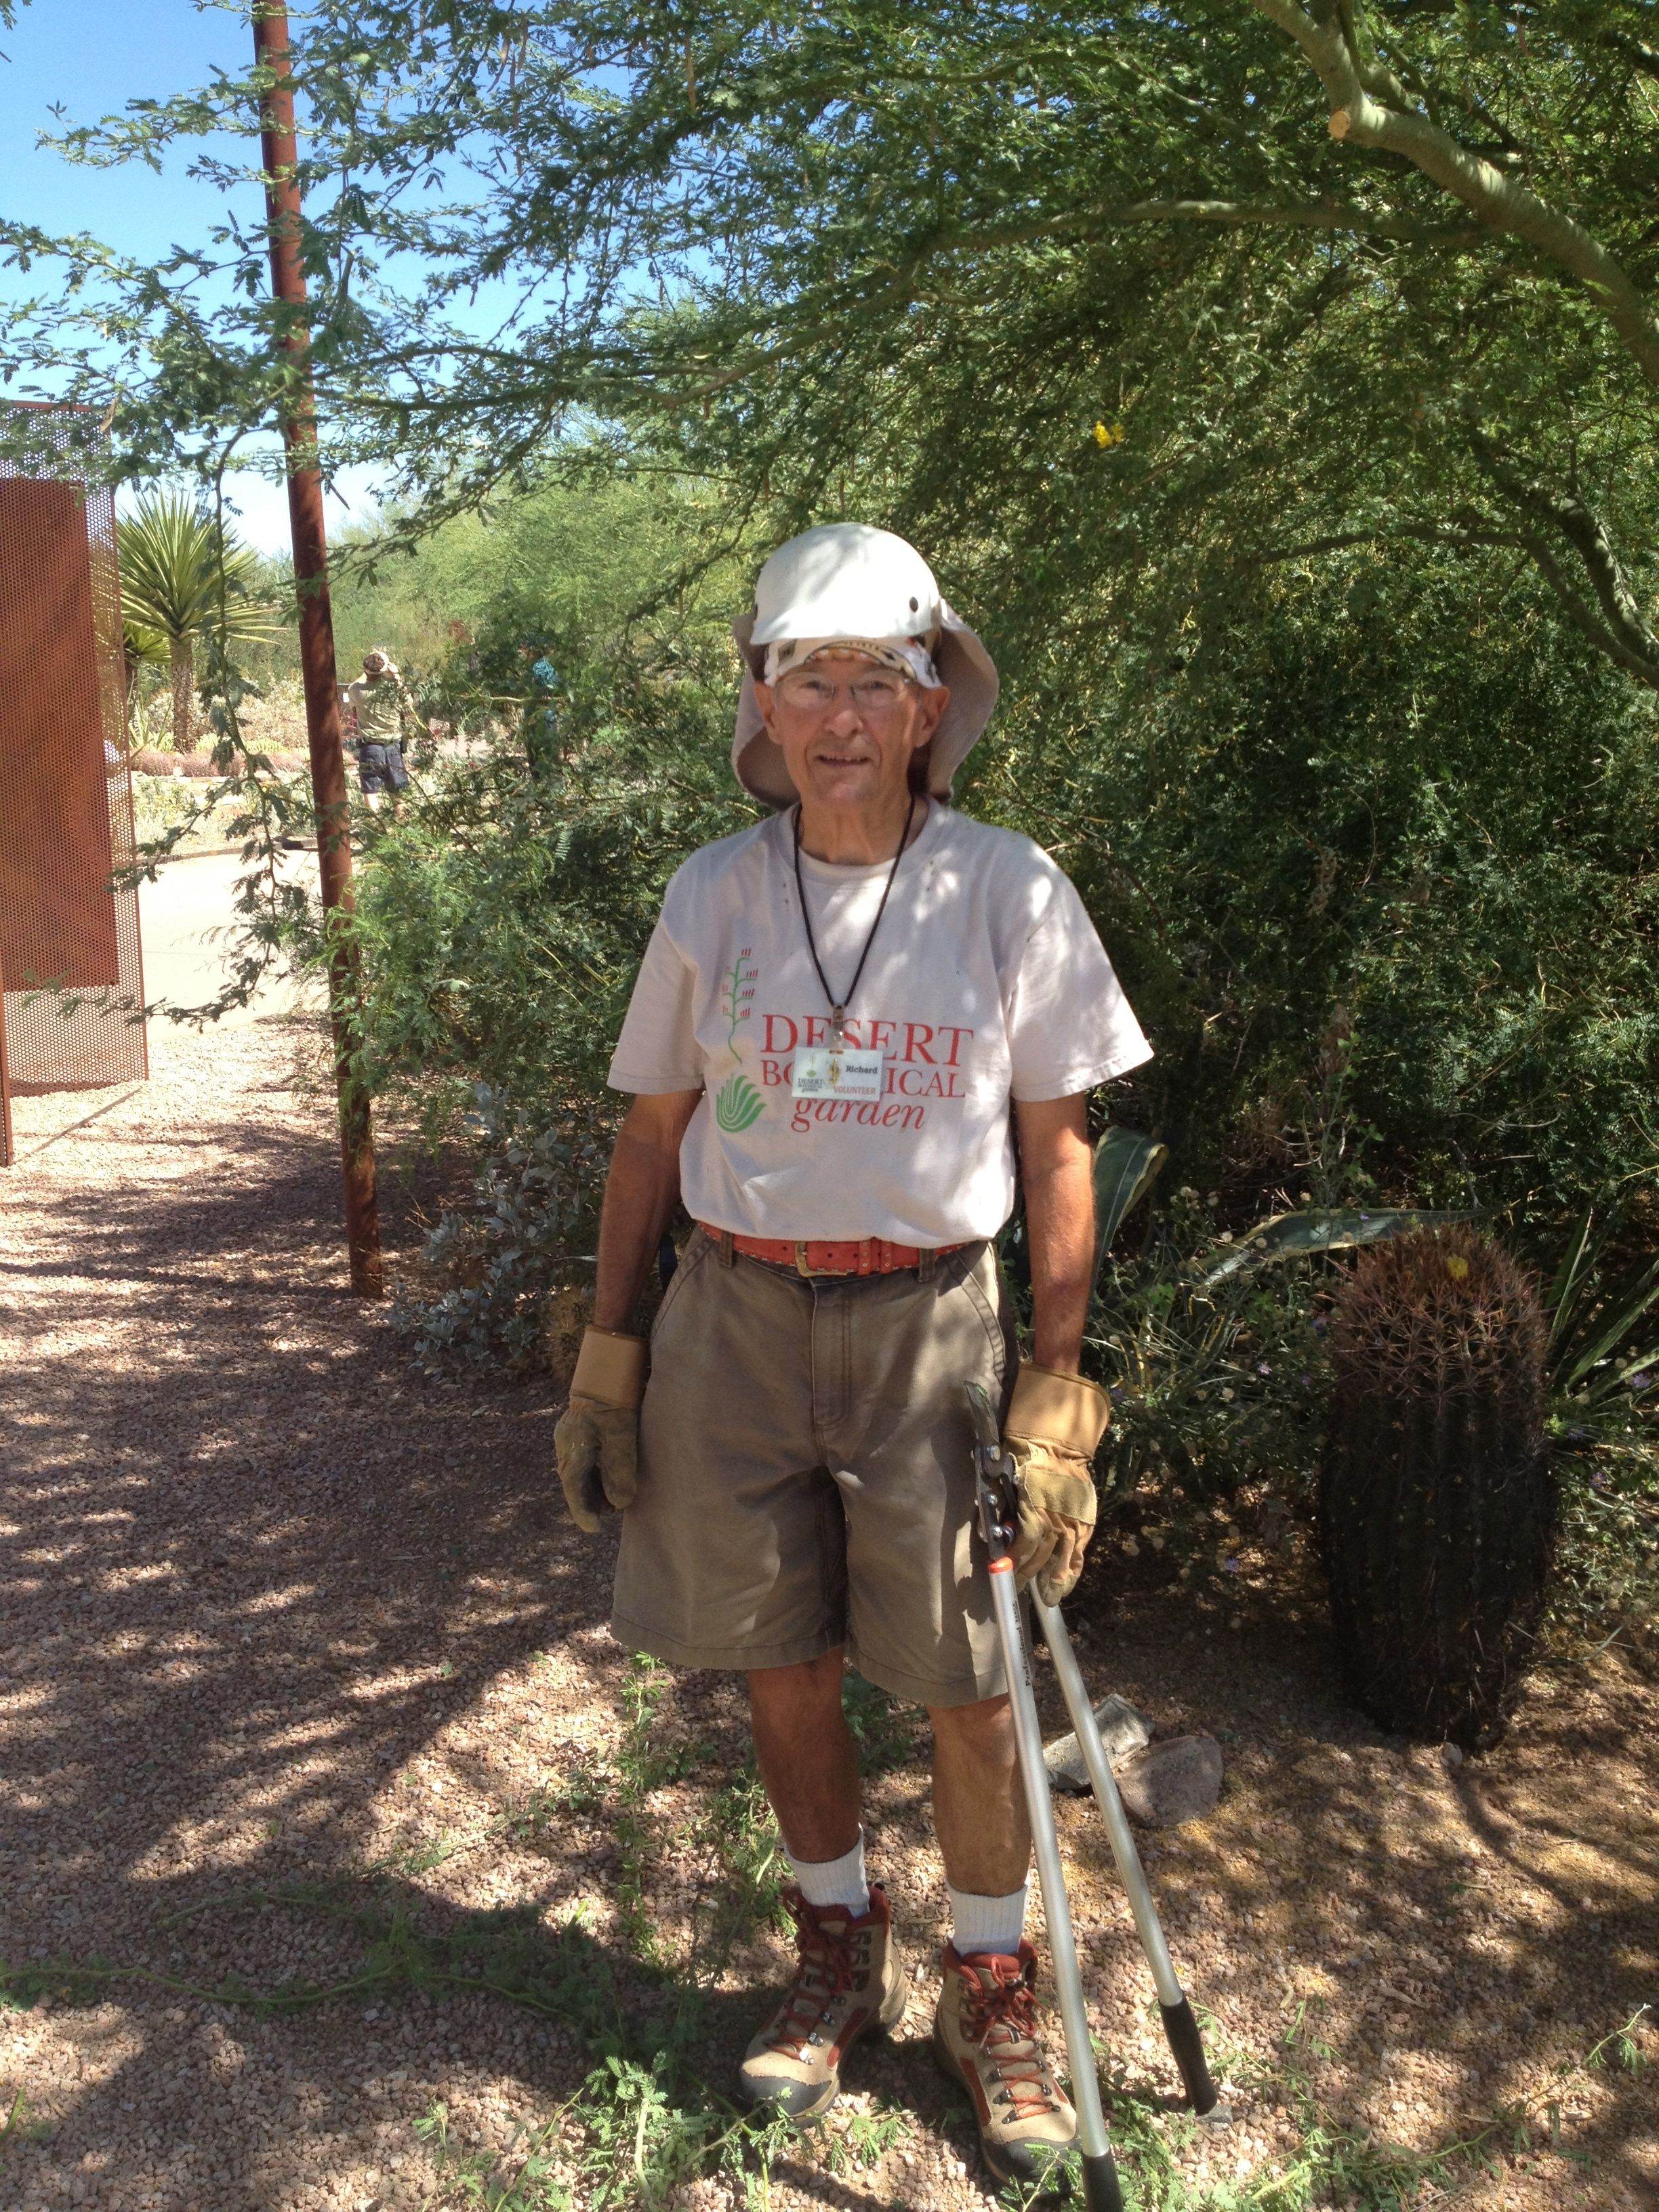 Richard, a garden volunteer, wears a hat and bandana to stay out of the hot summer sun!